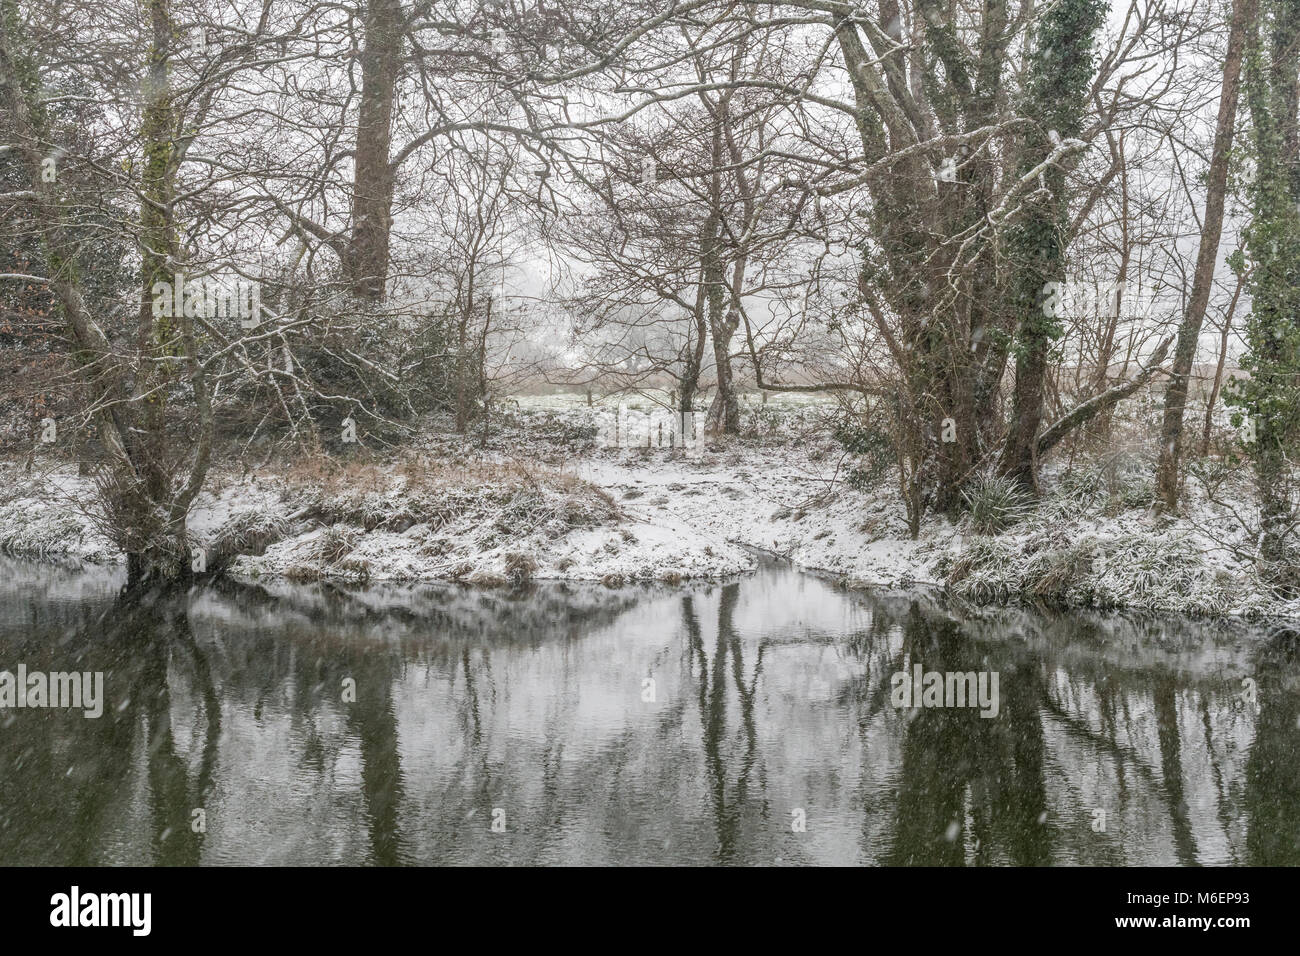 Snow dusted banks of the River Fowey at the Cornish town of Lostwithiel. - Stock Image